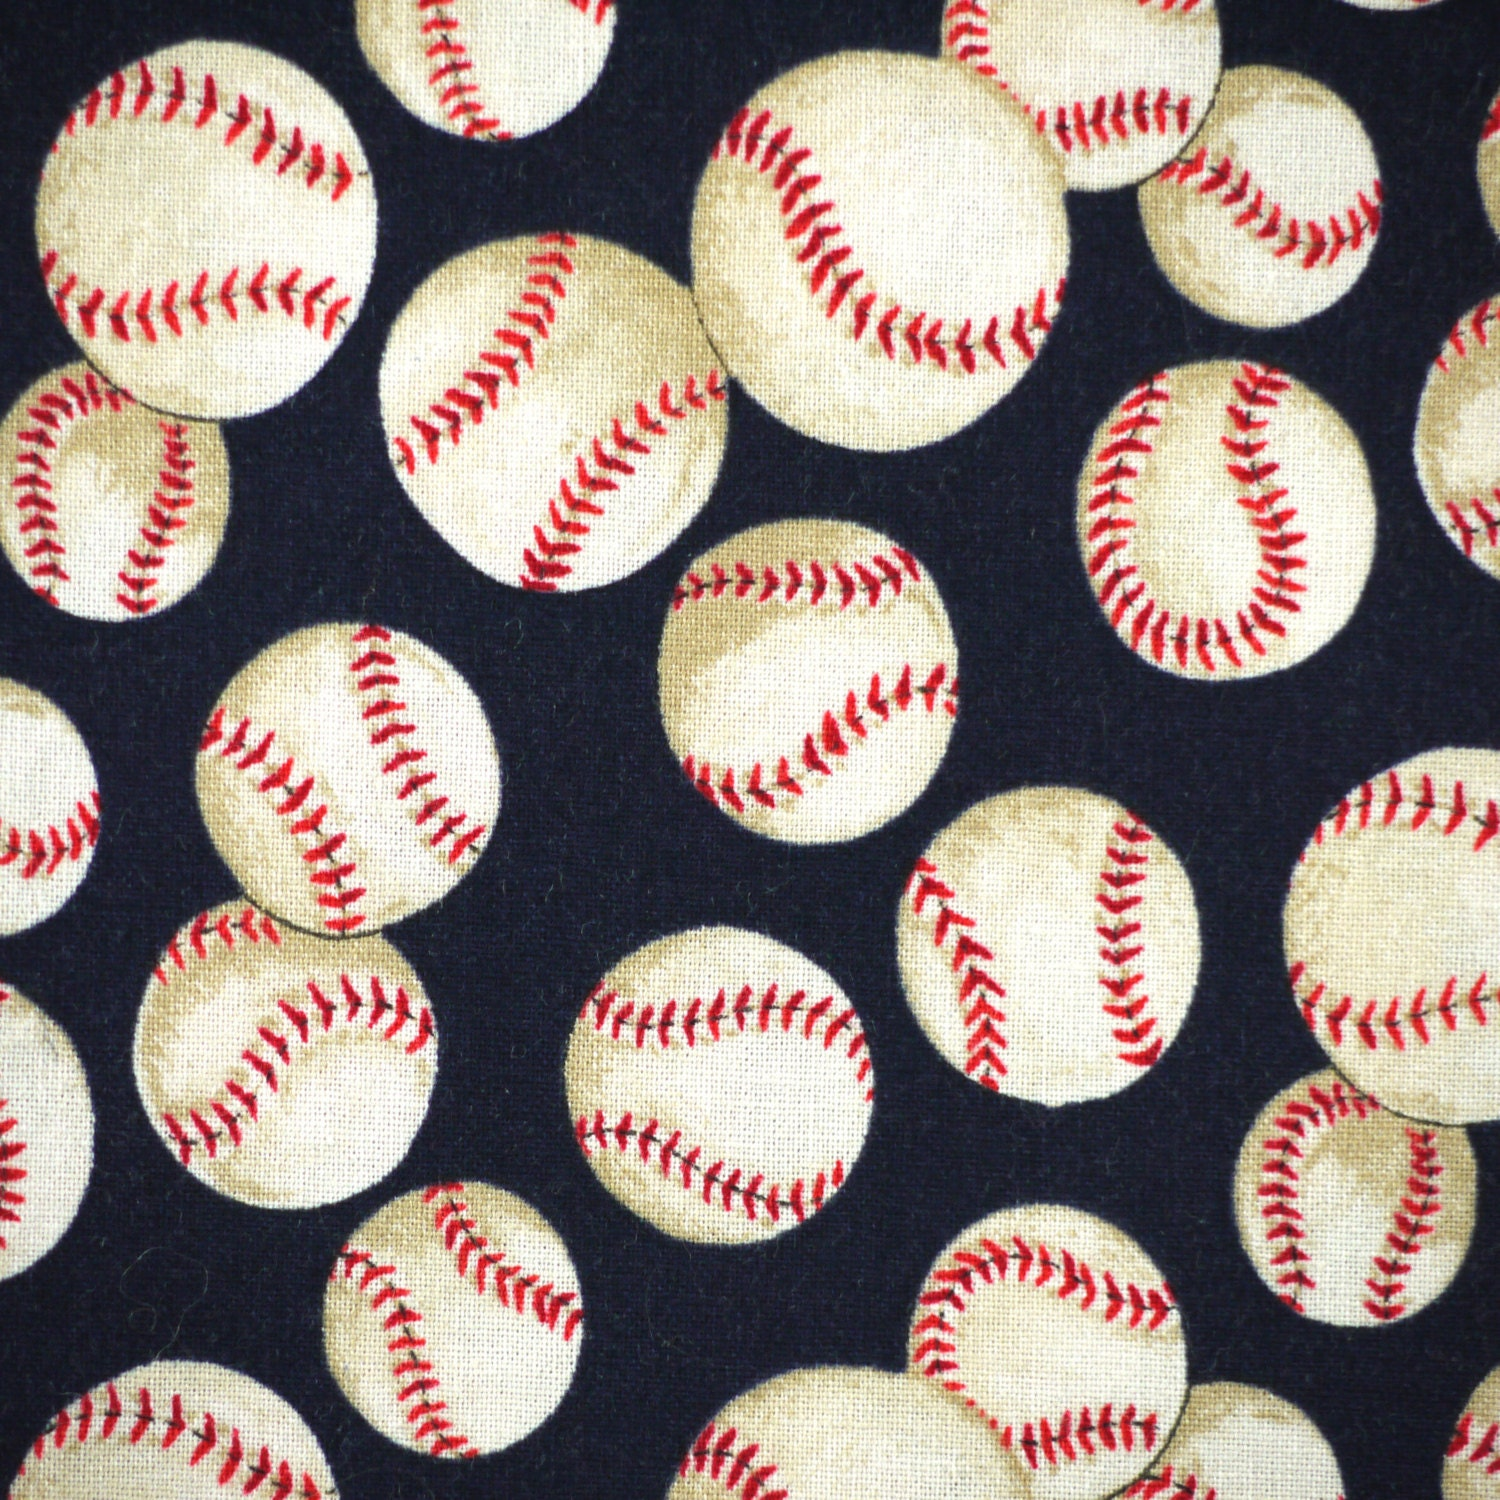 Support your baseball team with MLB fabrics from JOANN. Shop a variety of cotton & fleece fabrics with your favorite MLB team logos, mascots & more!